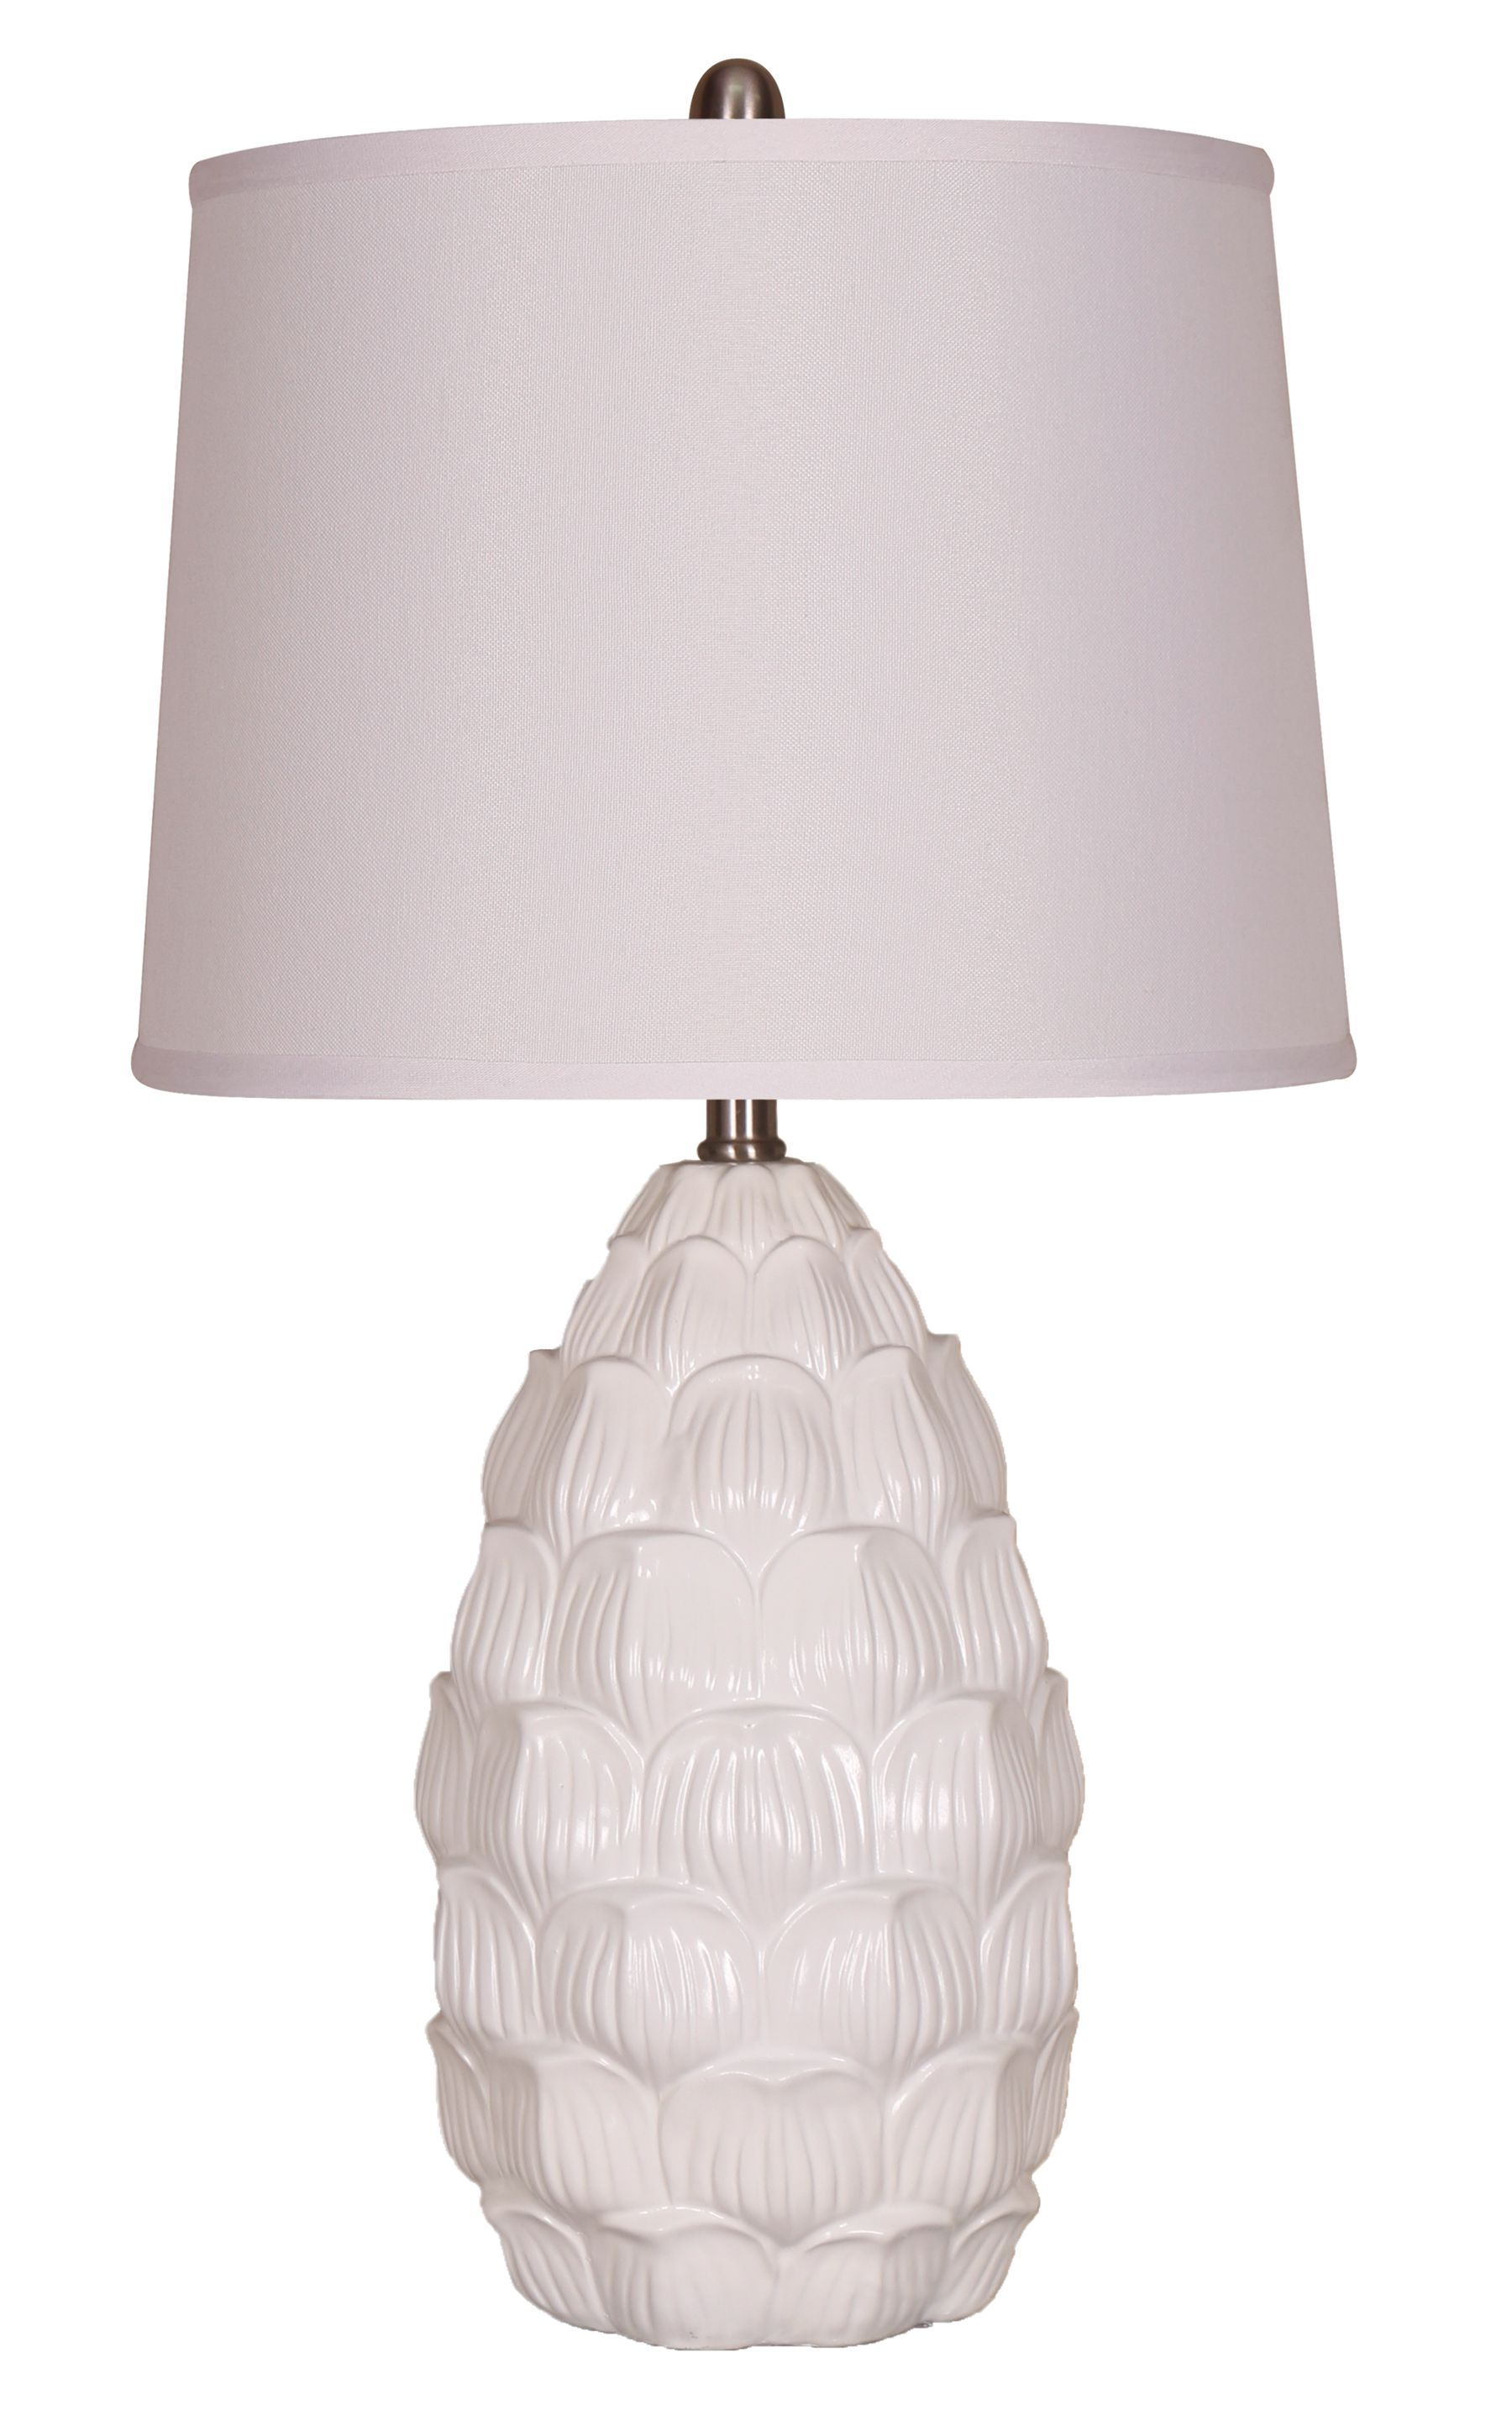 Elegant Designs Resin Table Lamp with Fabric Shade, White